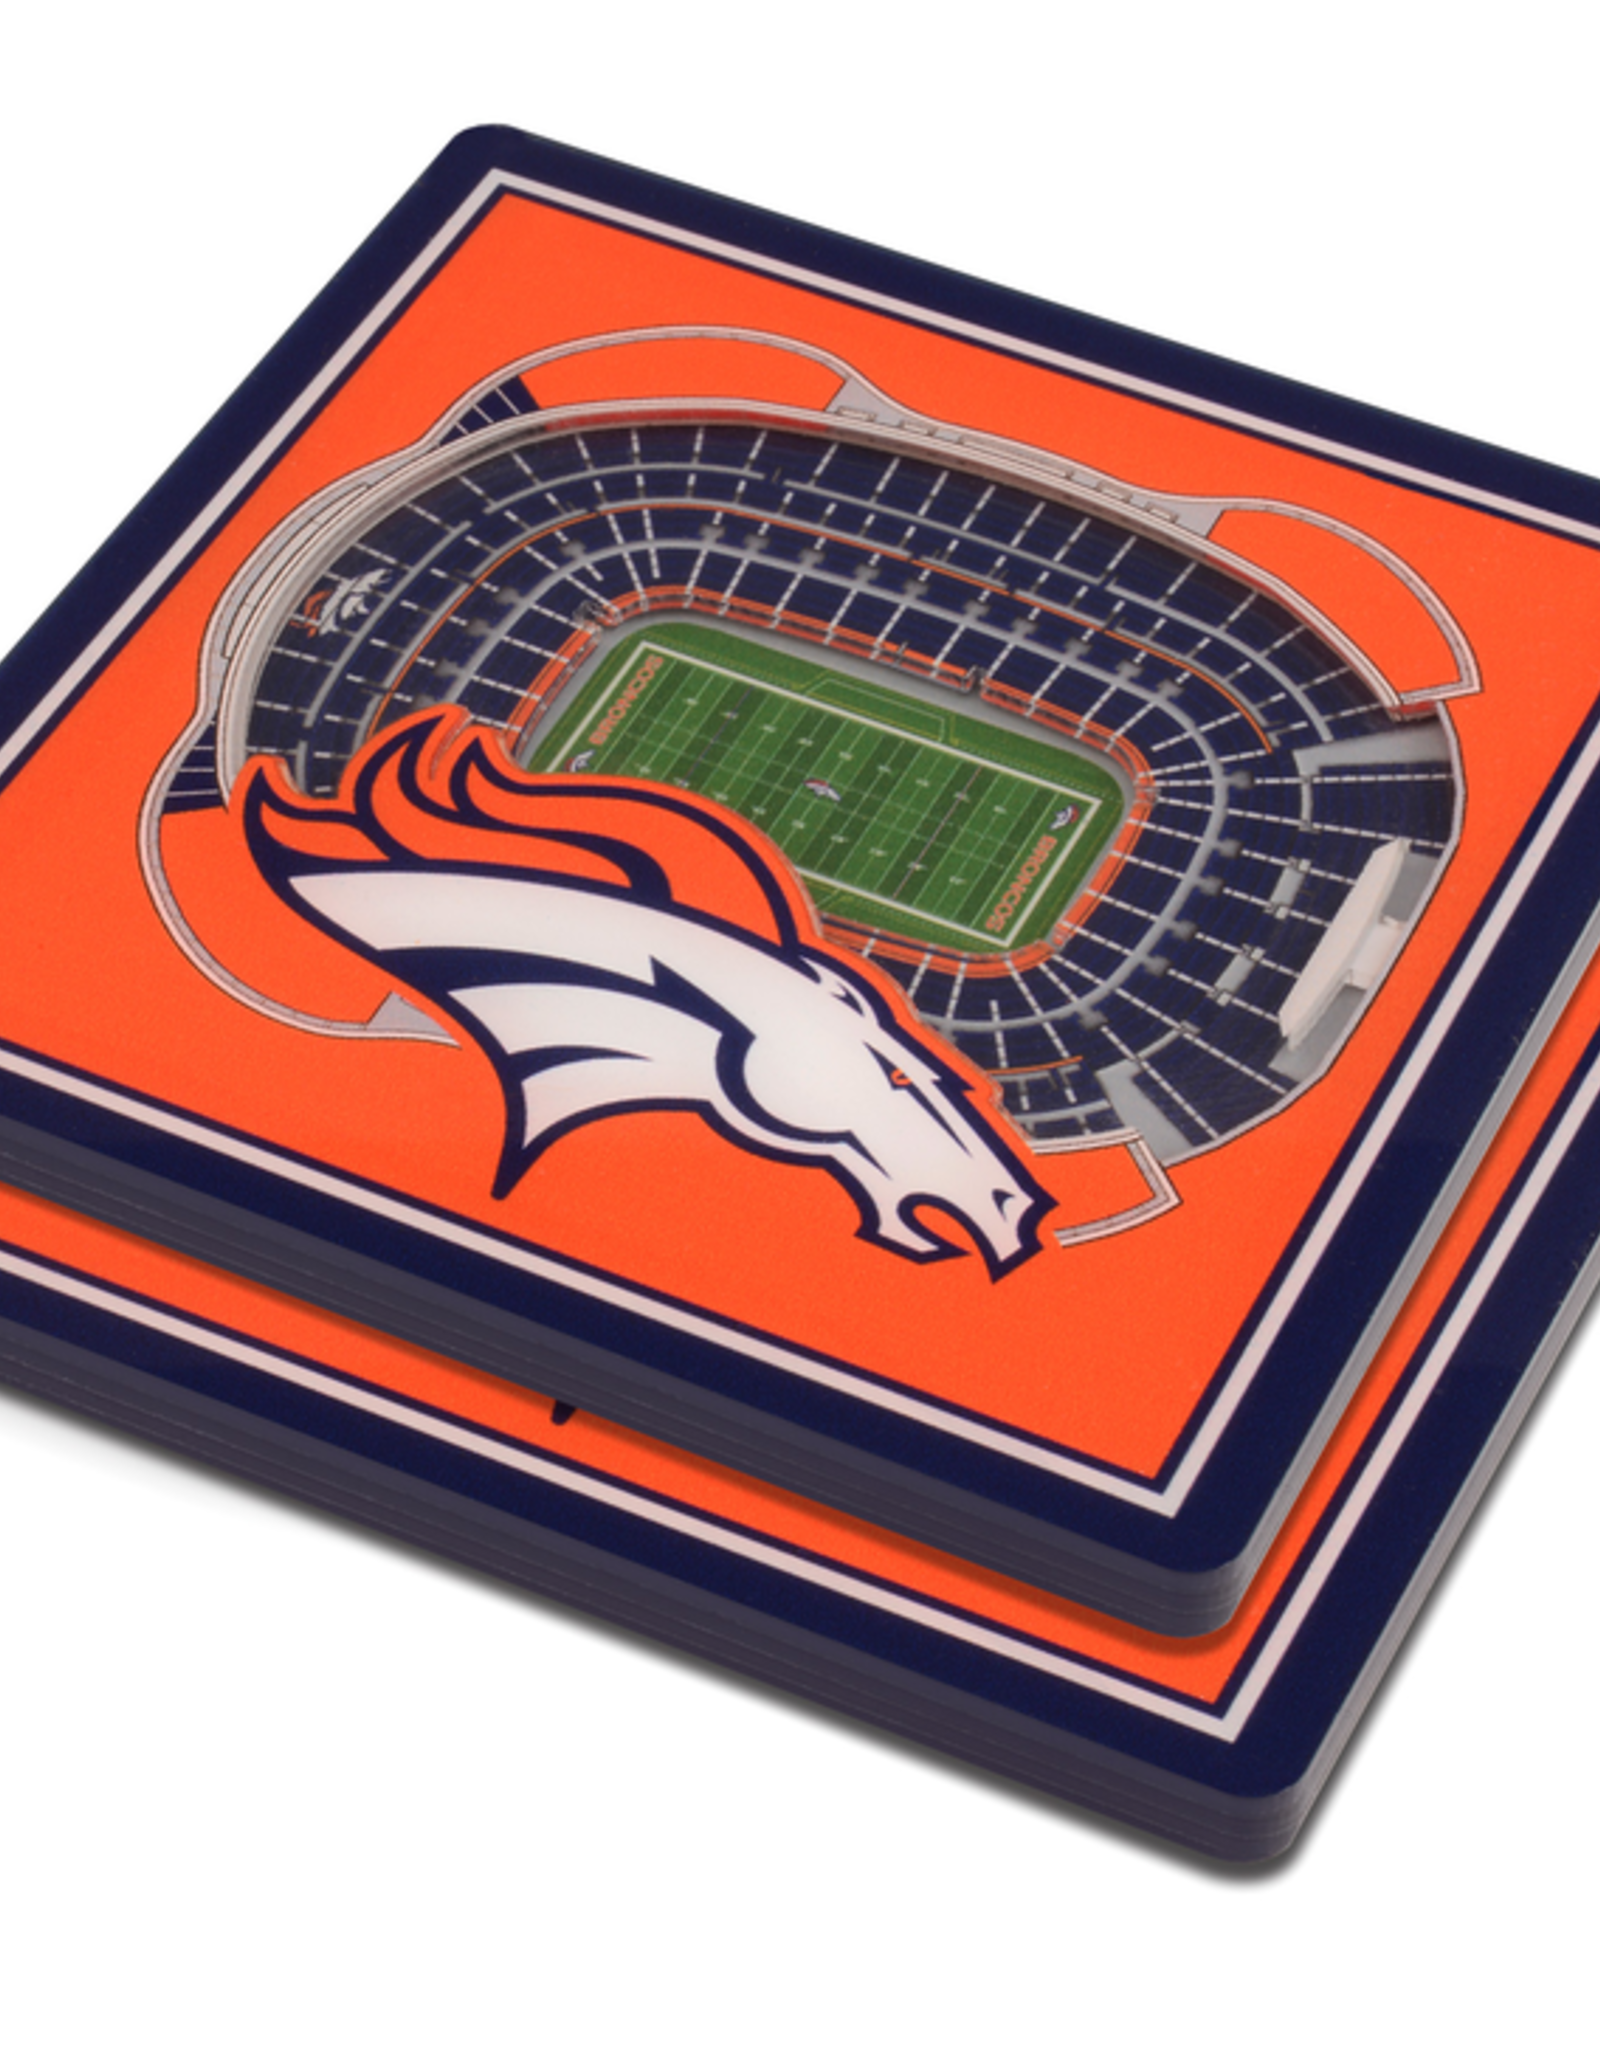 YOU THE FAN Denver Broncos 3-D StadiumViews Coasters 2-Pack